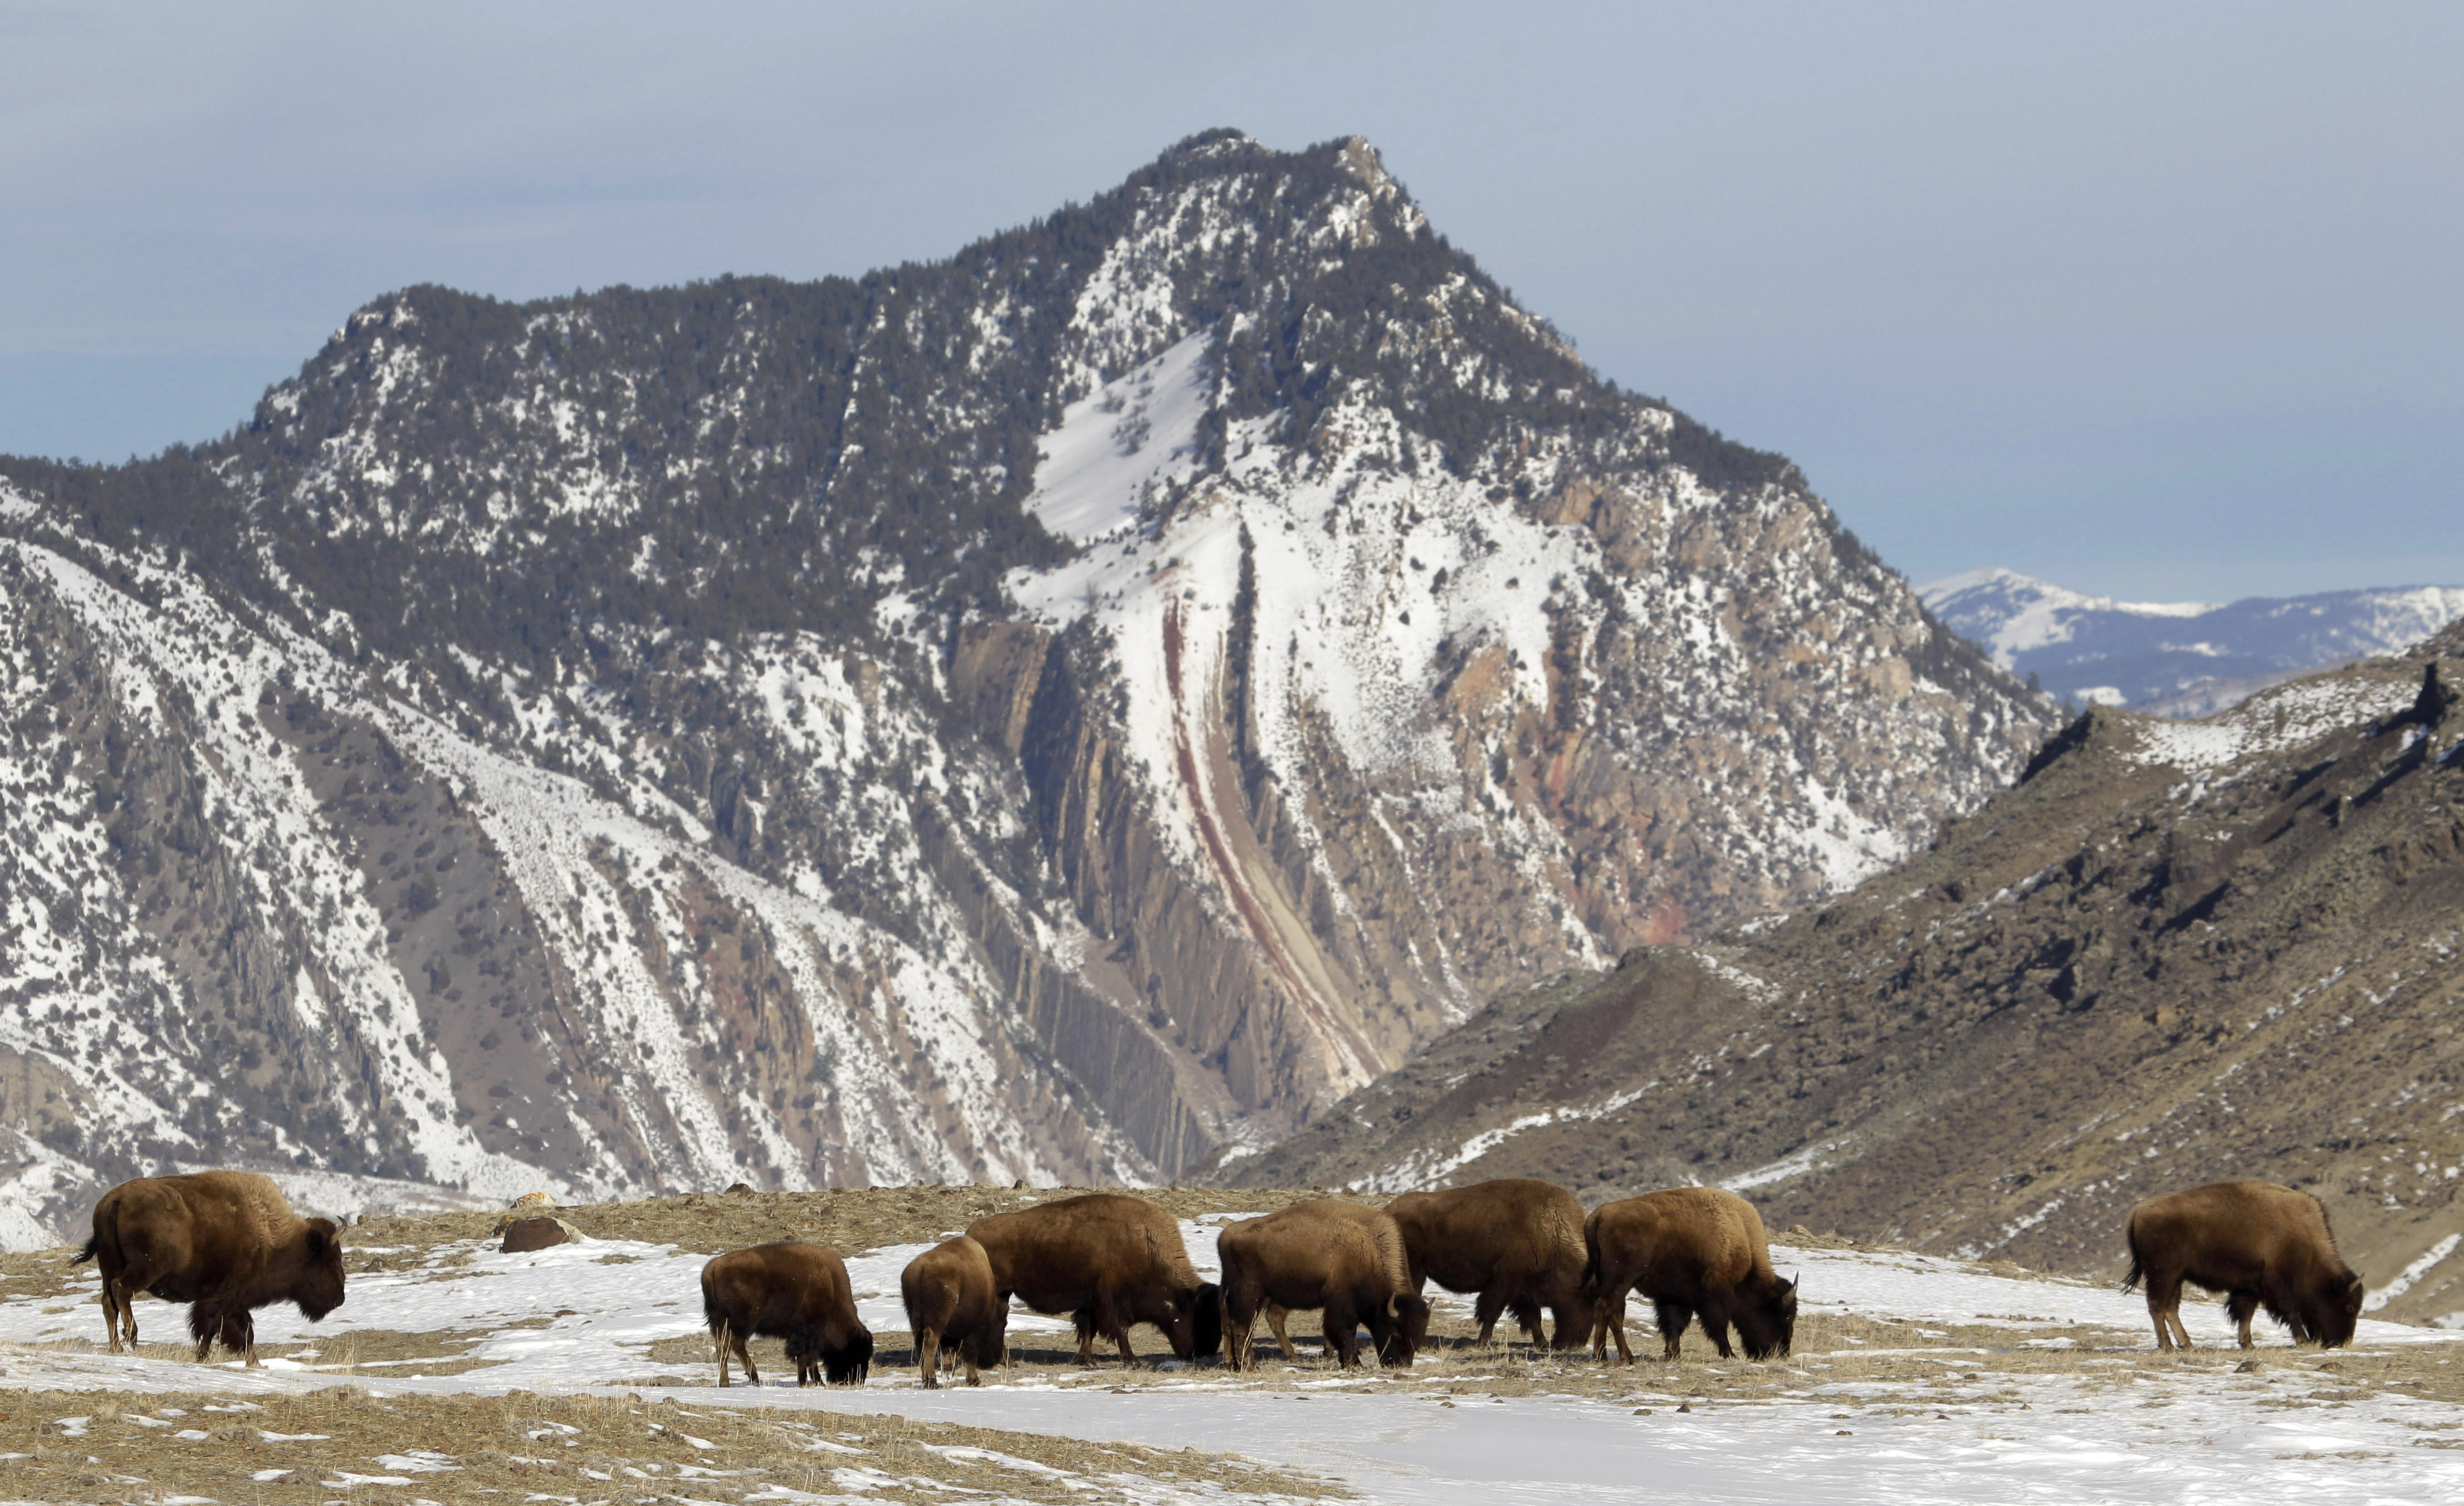 Estados Unidos Wallpaper Hd Revival Of The American Bison At Yellowstone National Park